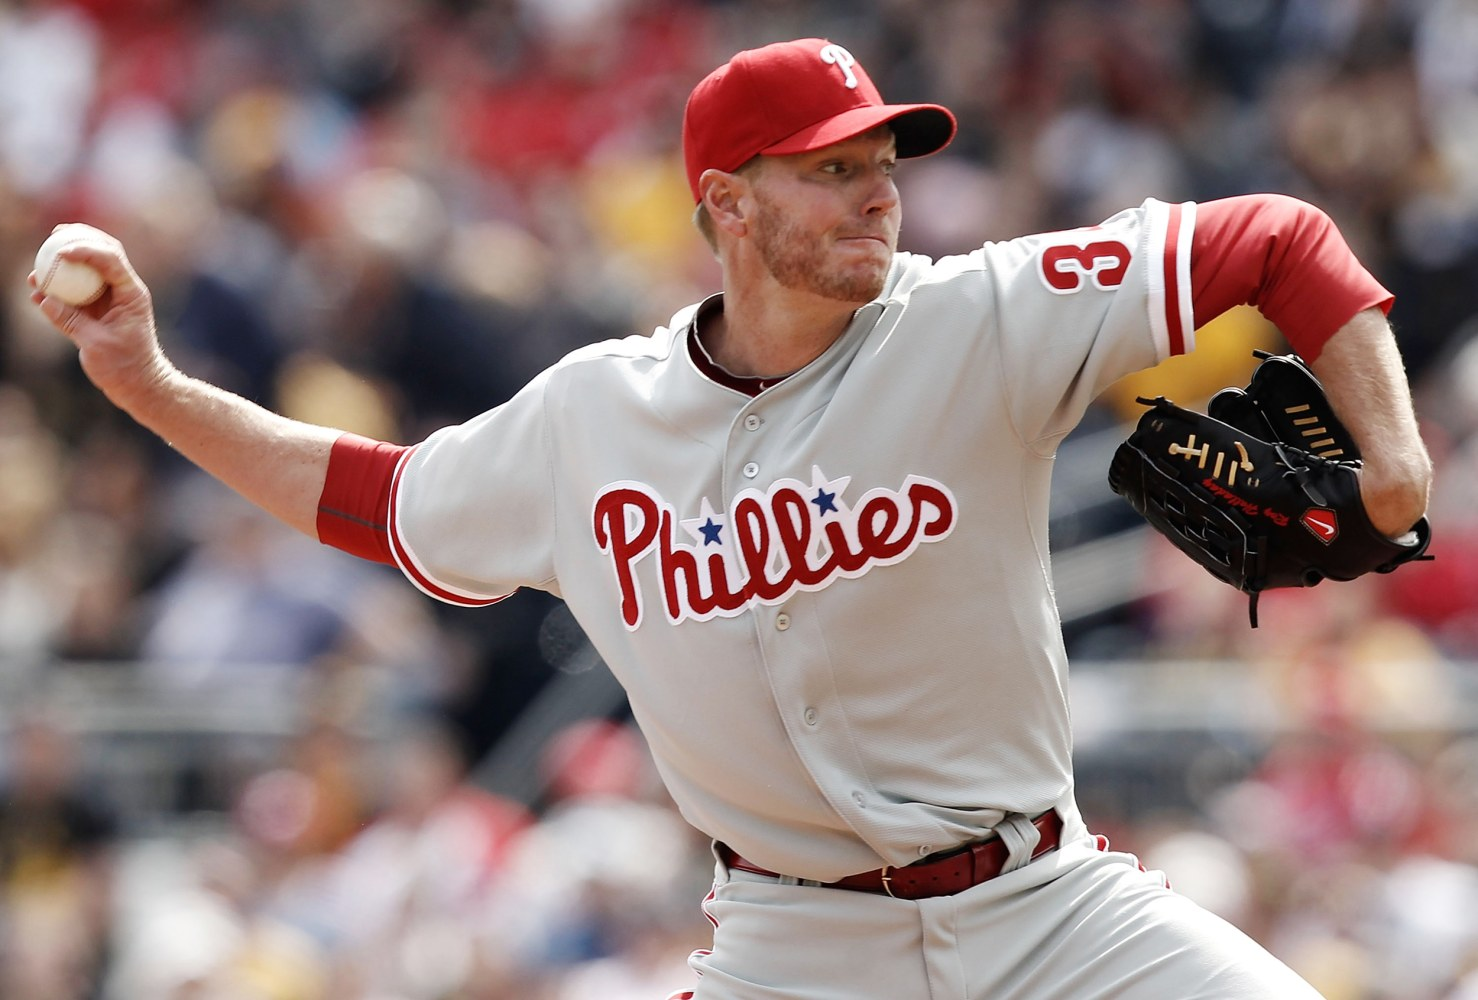 Former Blue Jay Roy Halladay's plane involved in fatal crash